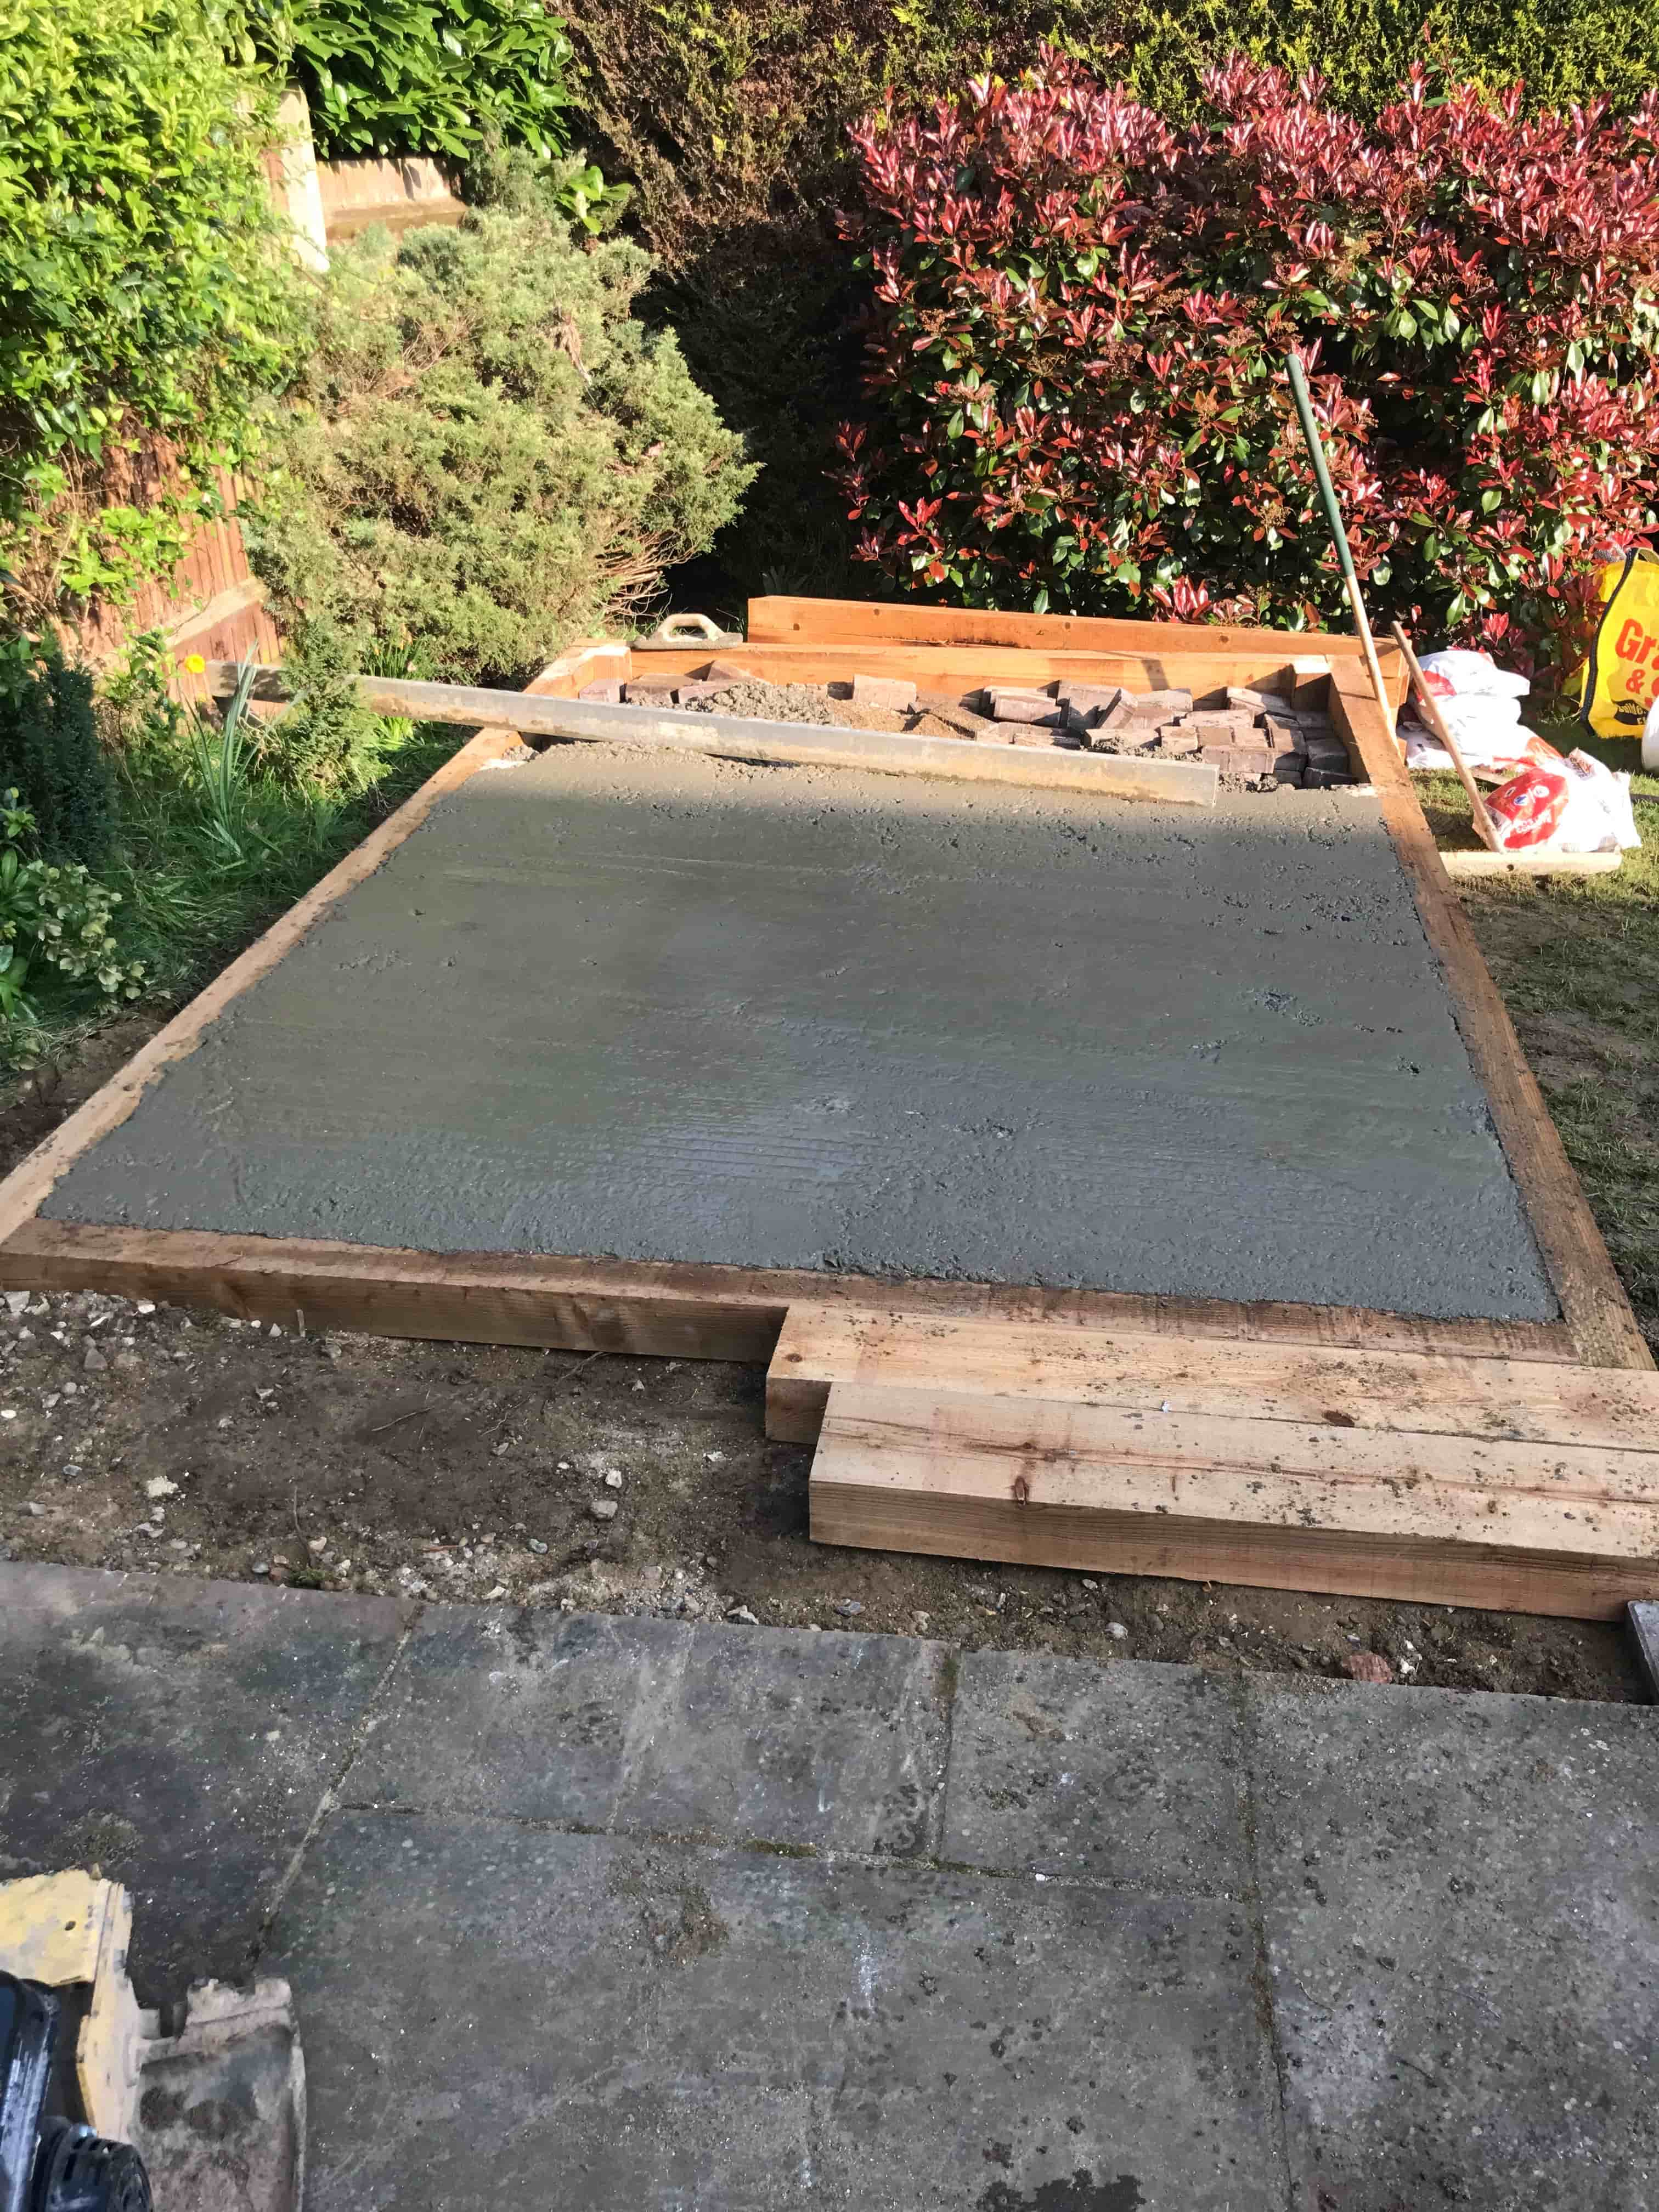 How to create a concrete base acre driveway patios for Base for concrete driveway